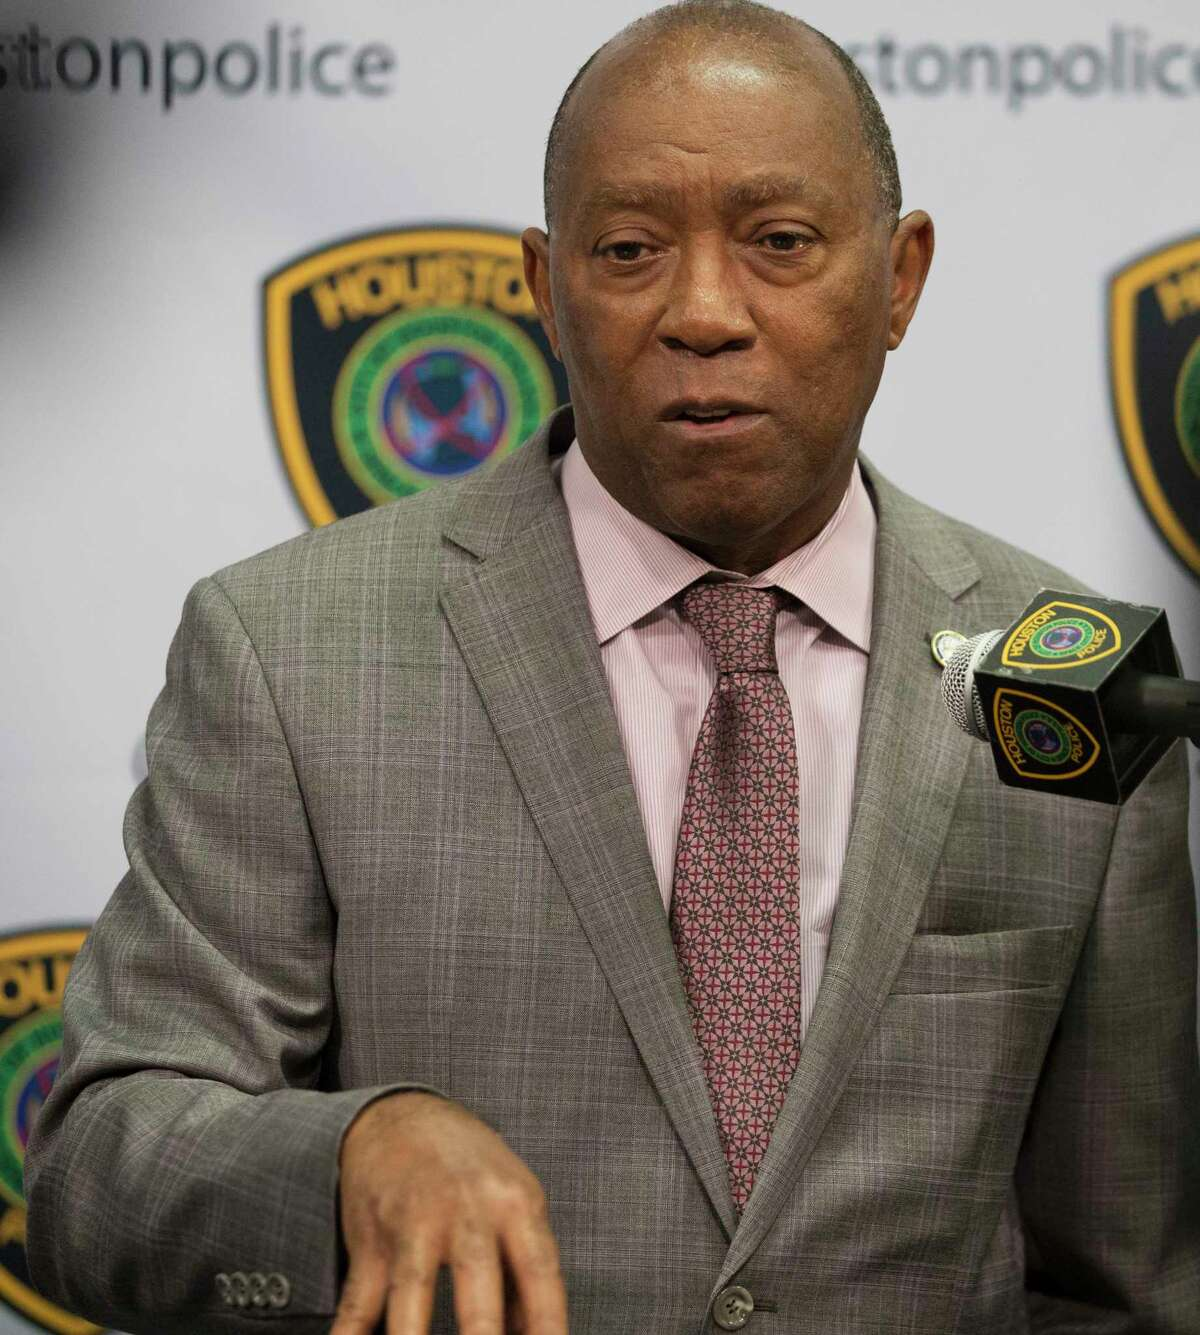 As of late Friday afternoon, Mayor Sylvester Turner said city officials had heard nothing of planned immigration raids in Houston. He said he would announce any changes on Twitter.